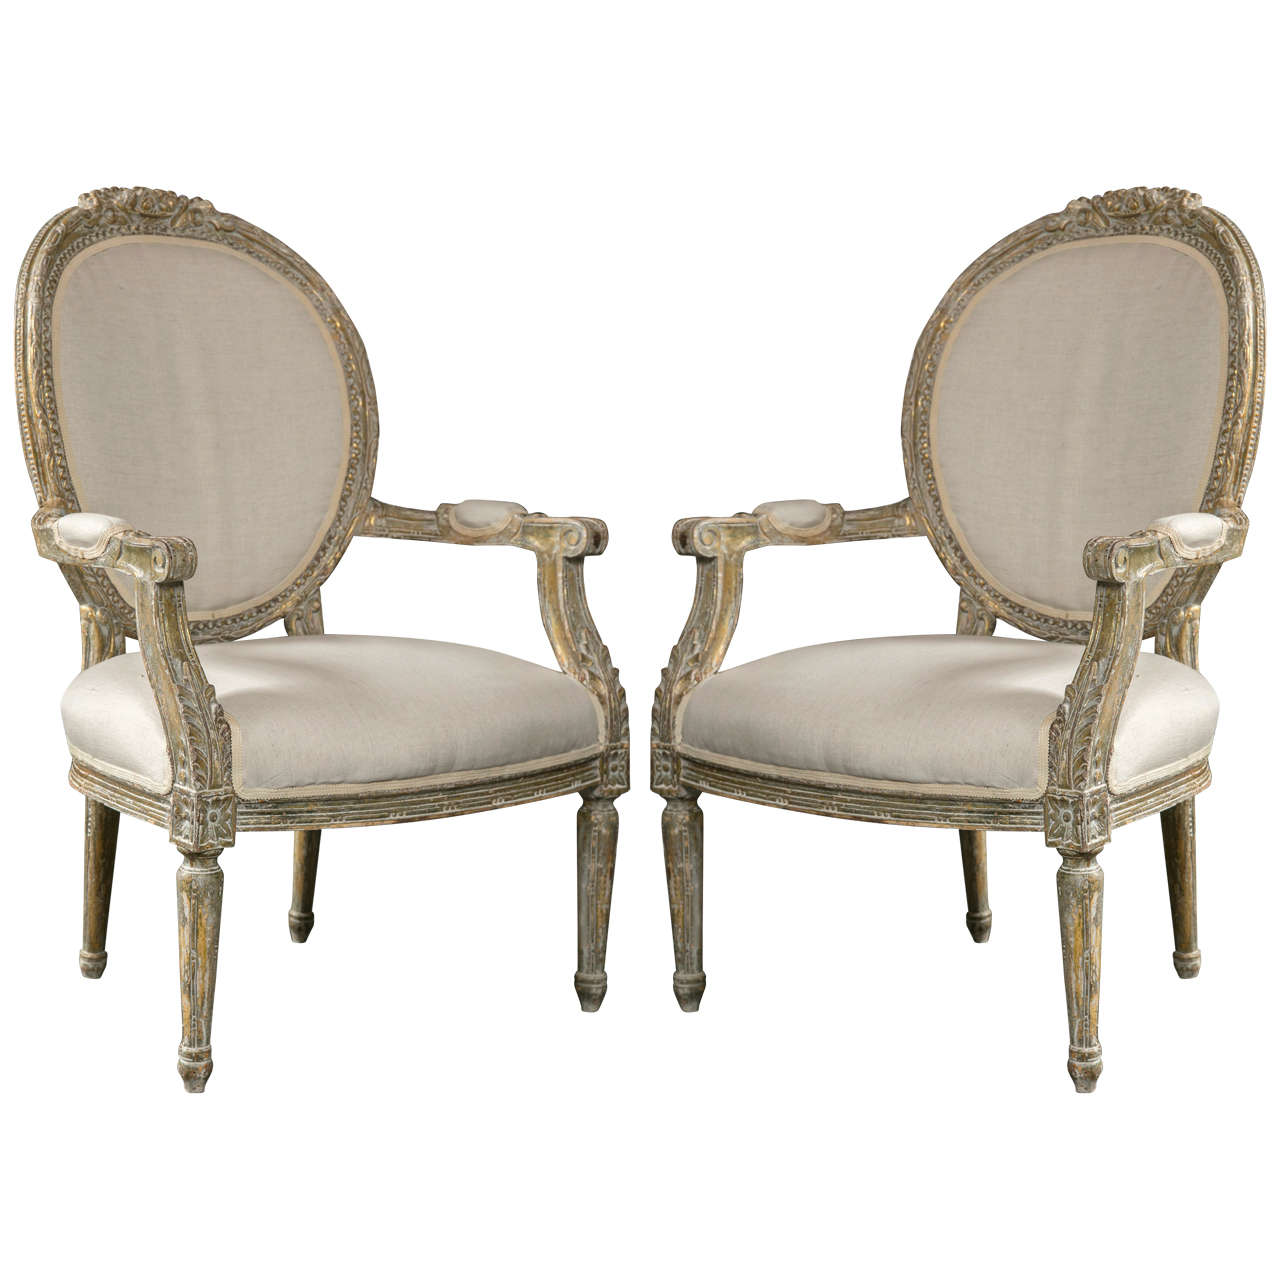 pair of french louis xvi style fauteuils at 1stdibs. Black Bedroom Furniture Sets. Home Design Ideas